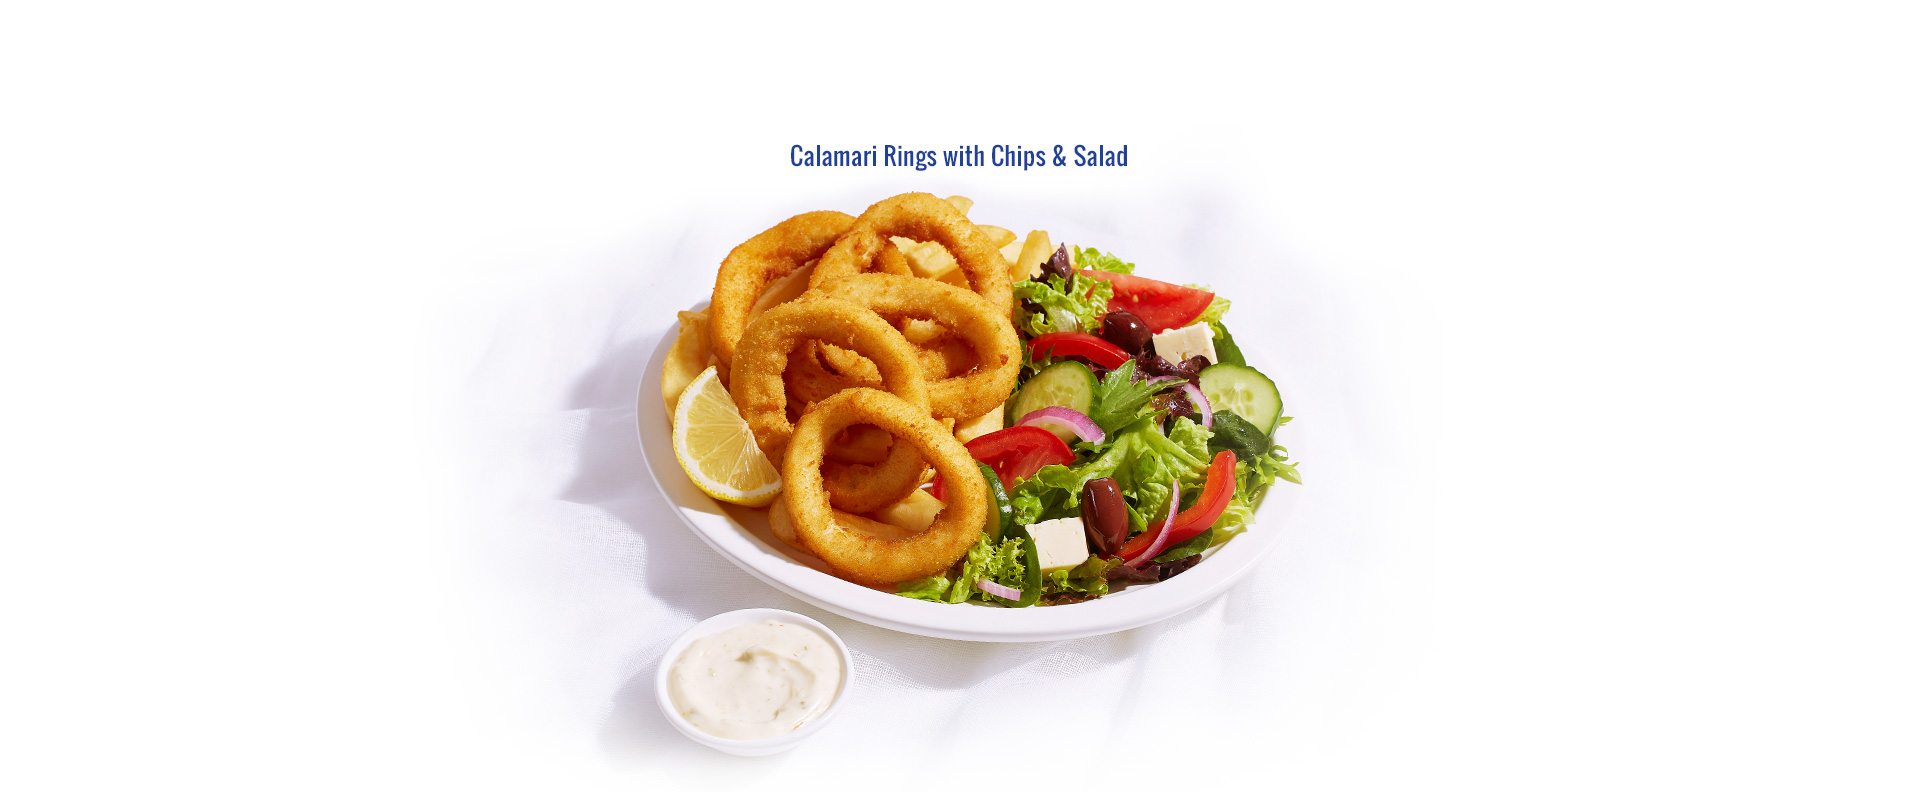 Camamari_Rings_Chips_Salad